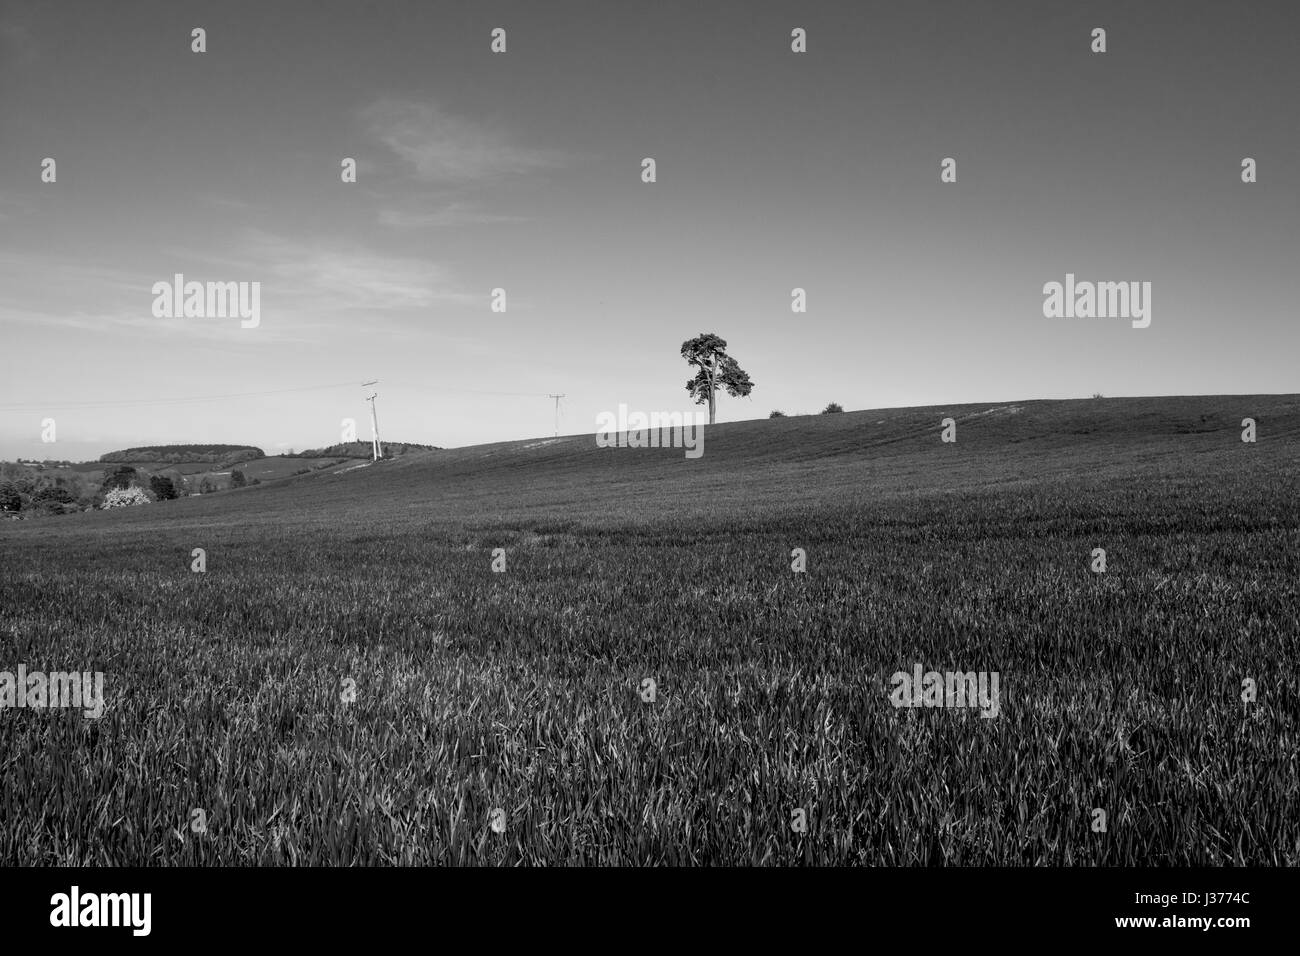 One lonely oak tree on a hill in the heart of England.  A farming landscape, UK. A wheat field in spring. - Stock Image